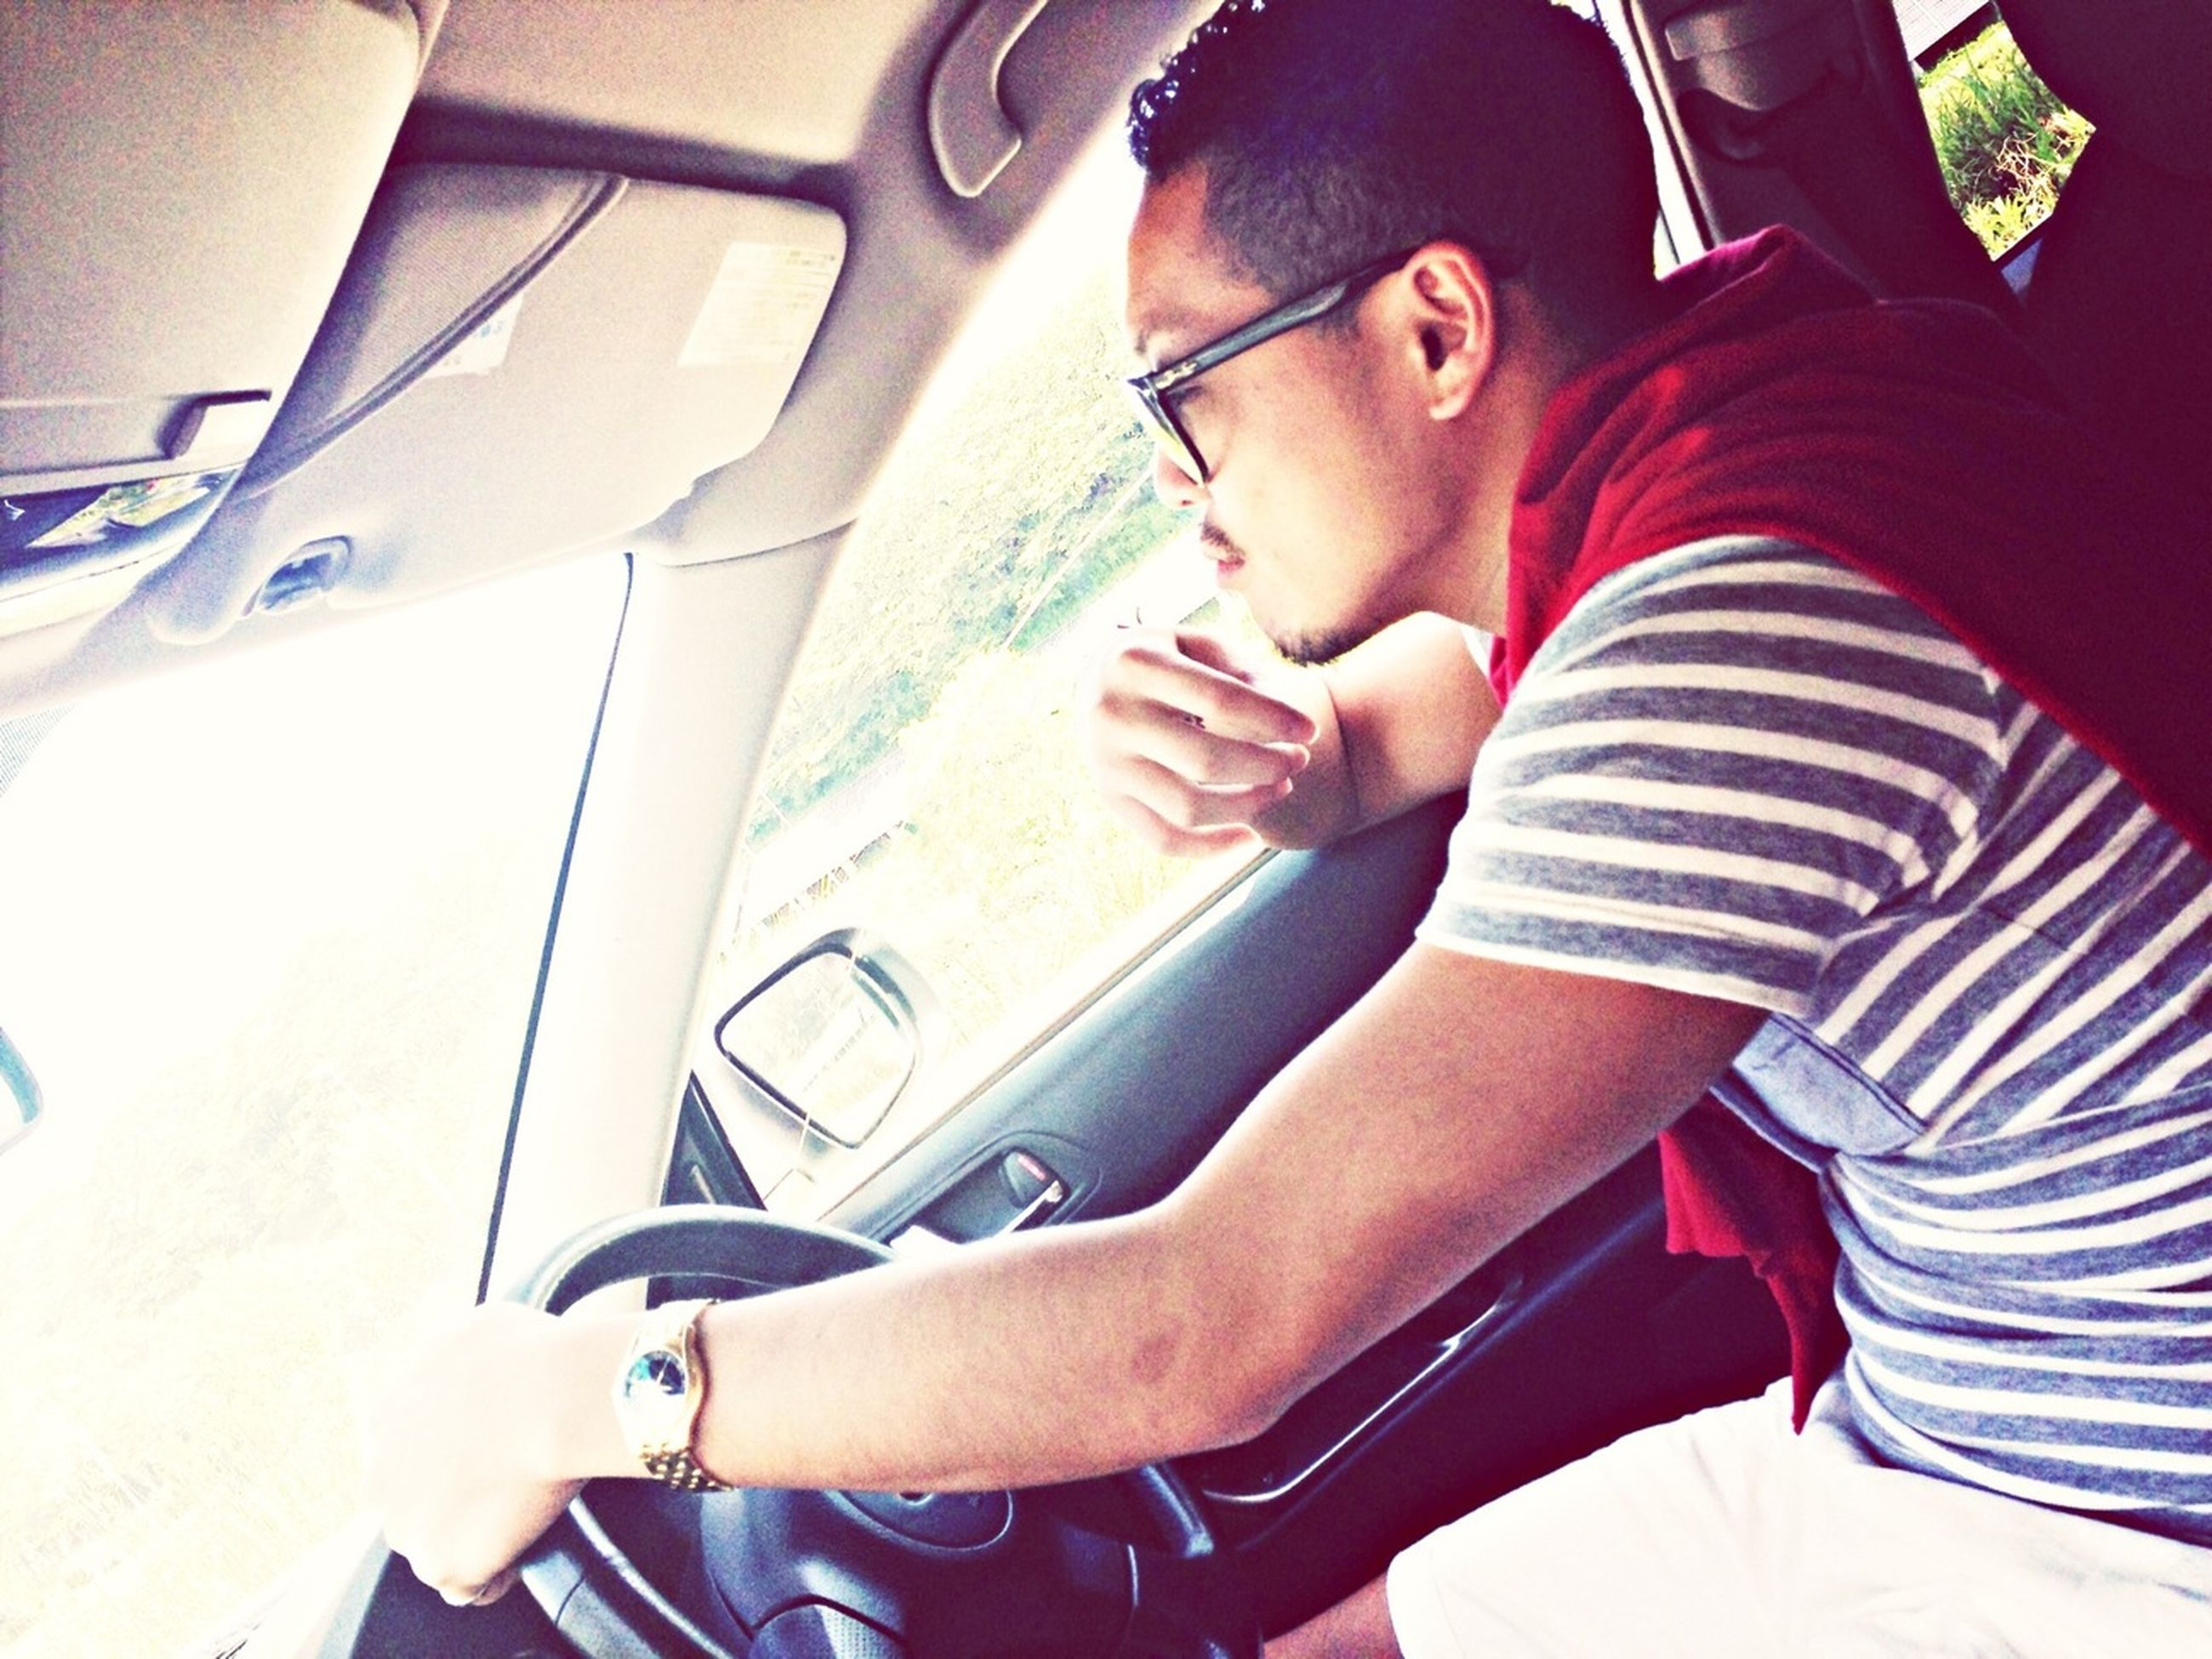 transportation, mode of transport, land vehicle, car, vehicle interior, young adult, lifestyles, travel, sitting, car interior, leisure activity, person, vehicle seat, young men, journey, sunglasses, casual clothing